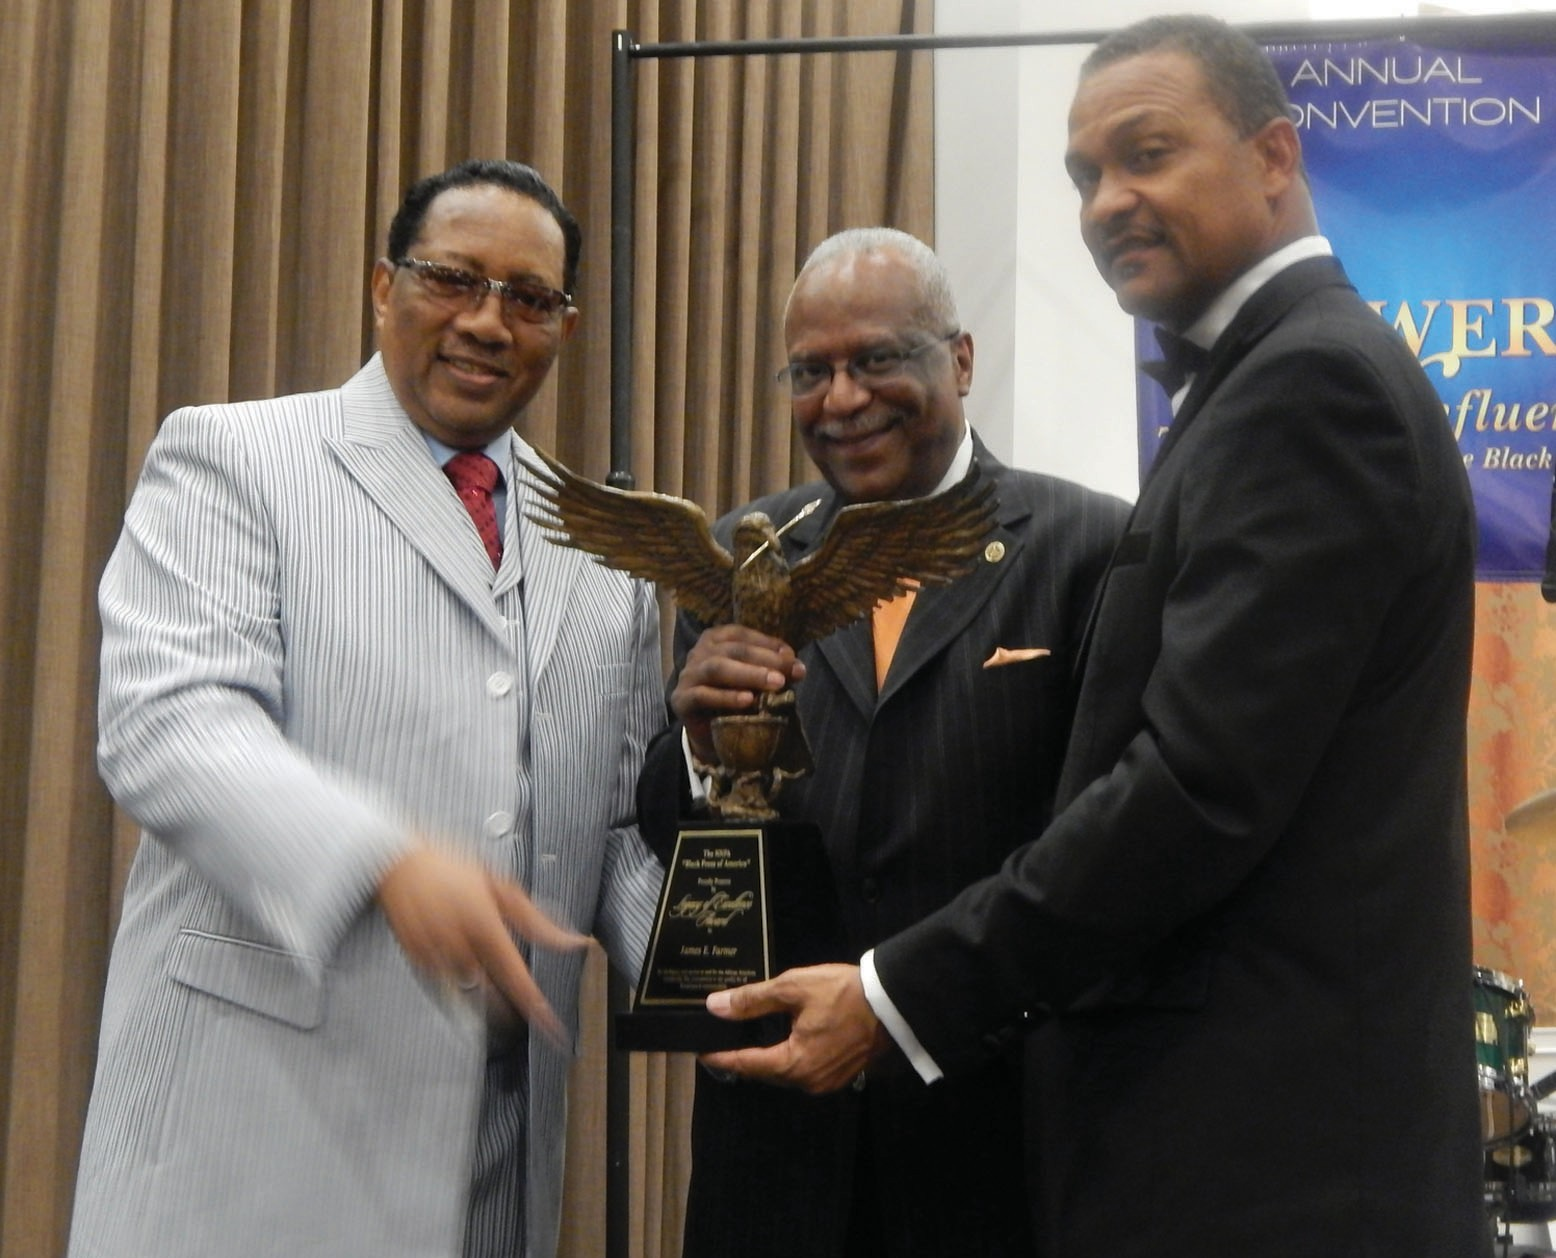 Ambassador Dr. Bobby Jones (left) Presents Legacy Award to Jim Farmer( center).